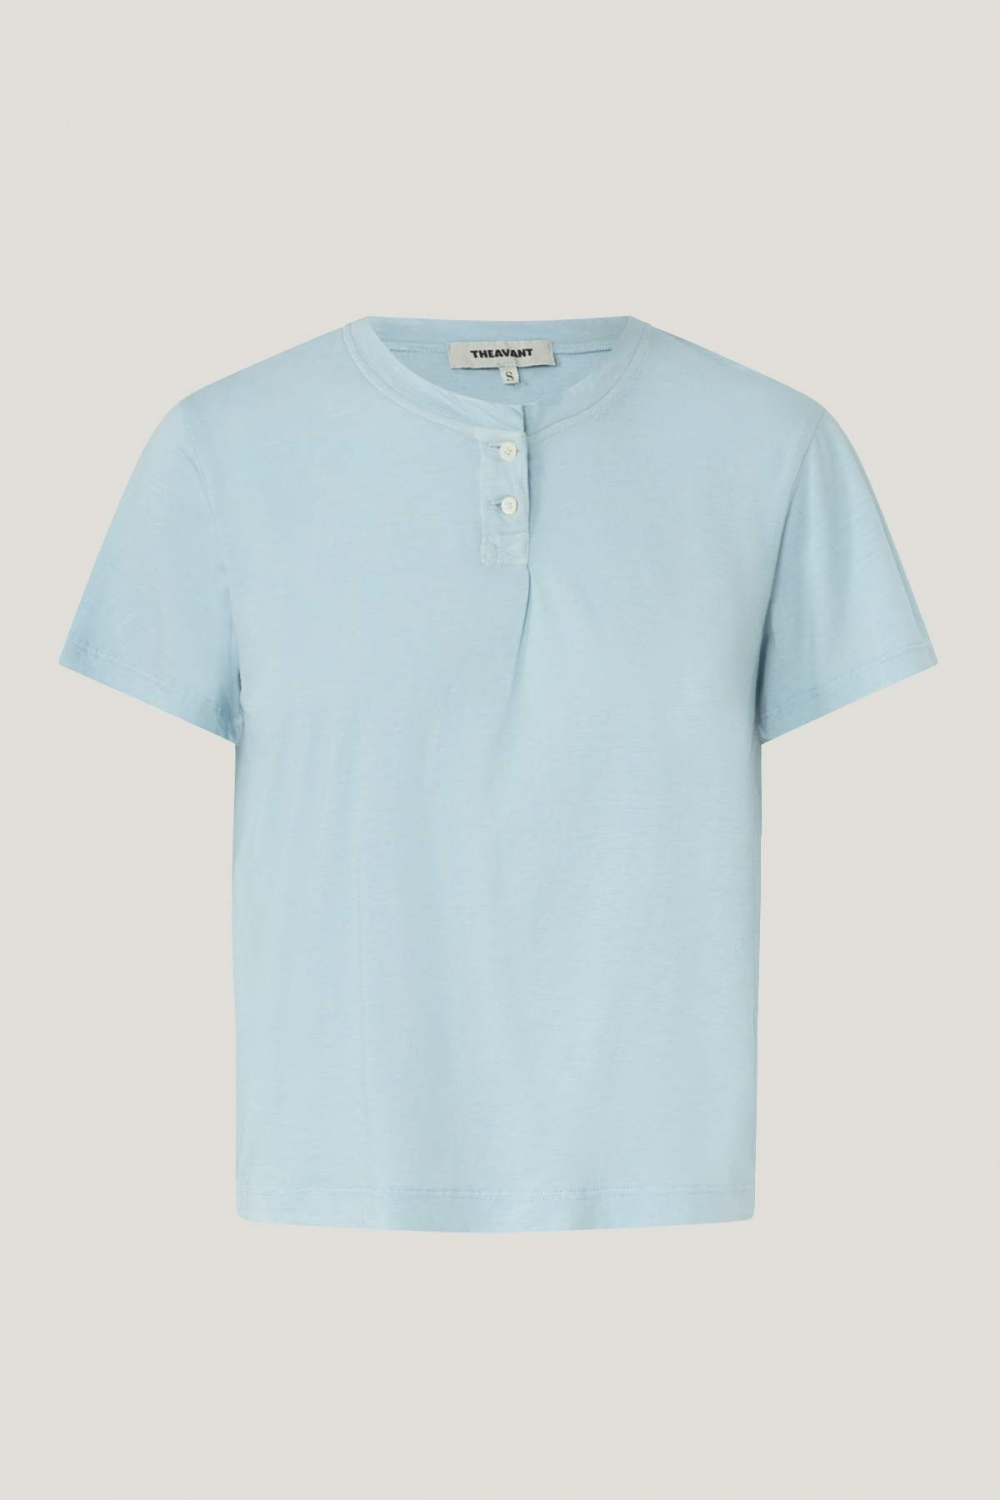 MARISOL BLUE T-SHIRT WITH...